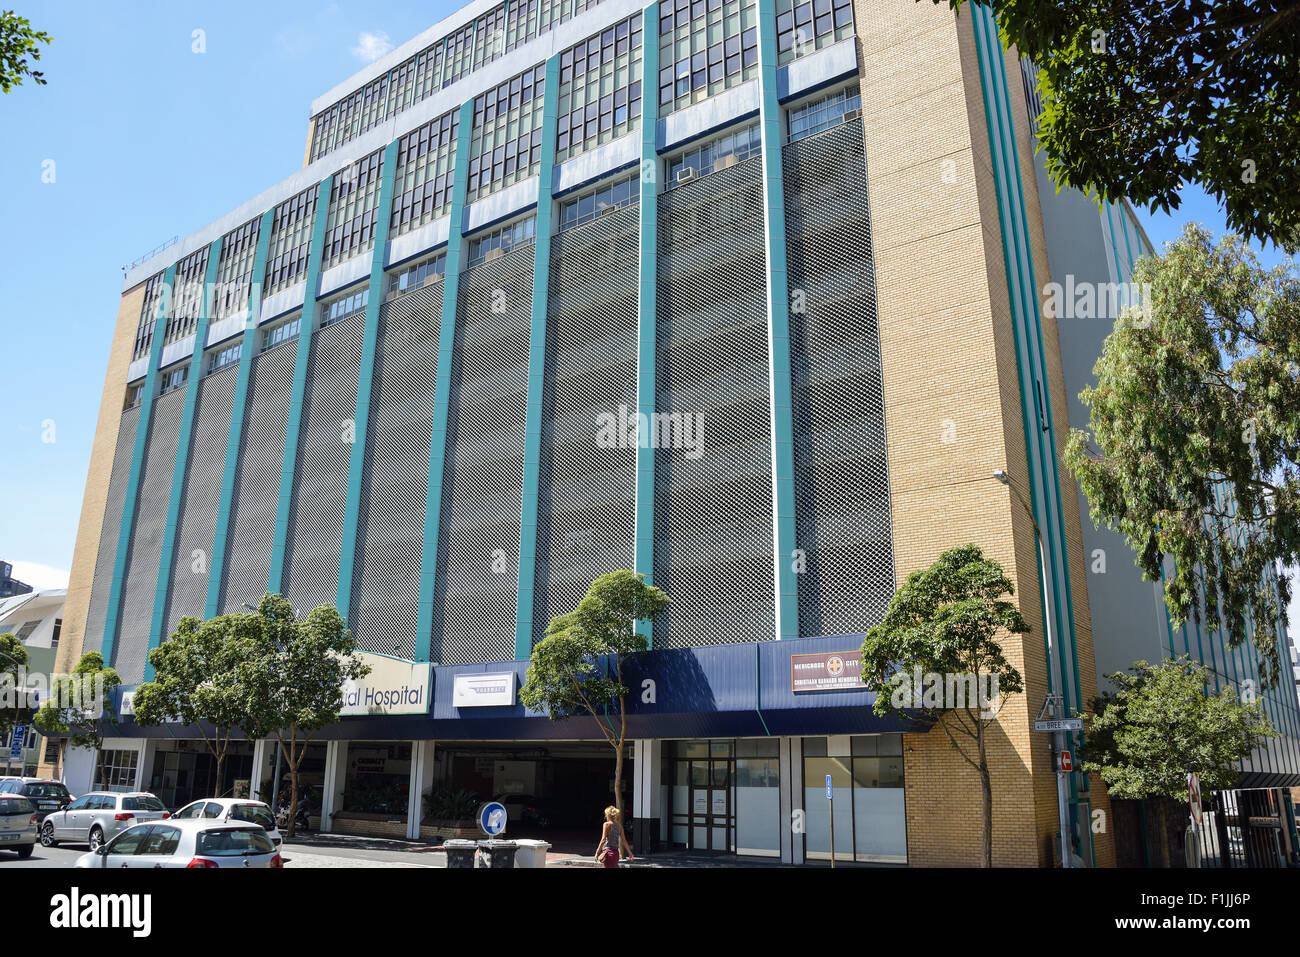 Christiaan Barnard Memorial Hospital, Bree Street, Cape Town, Western Cape Province, Republic of South Africa - Stock Image